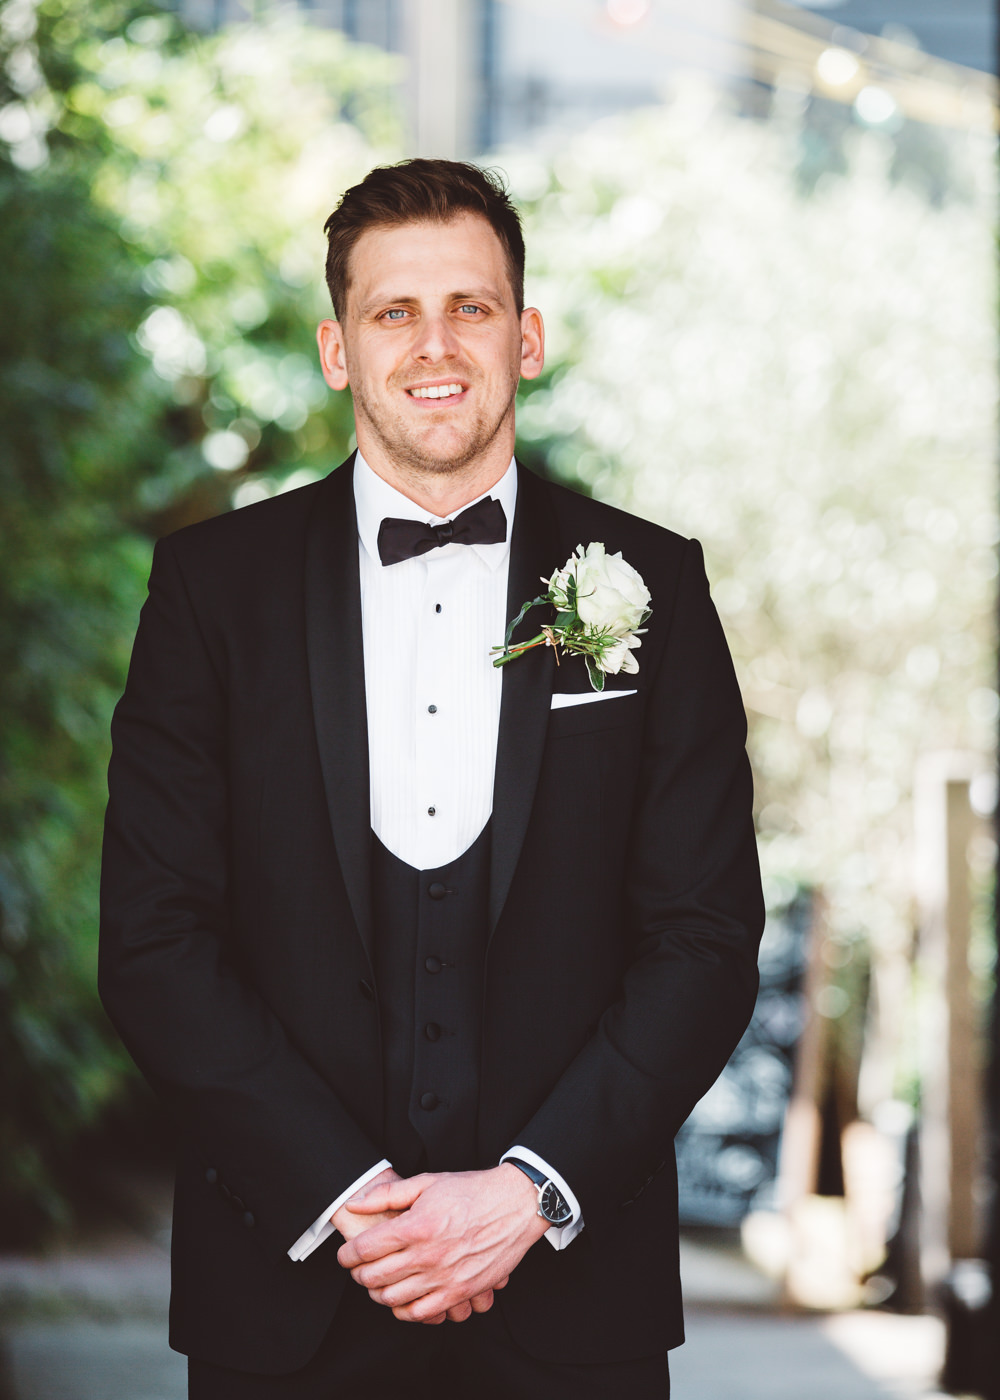 Dinner Suits Tuxedos Bow Tie Groom Groomsmen George Rye Wedding Hollie Carlin Photography